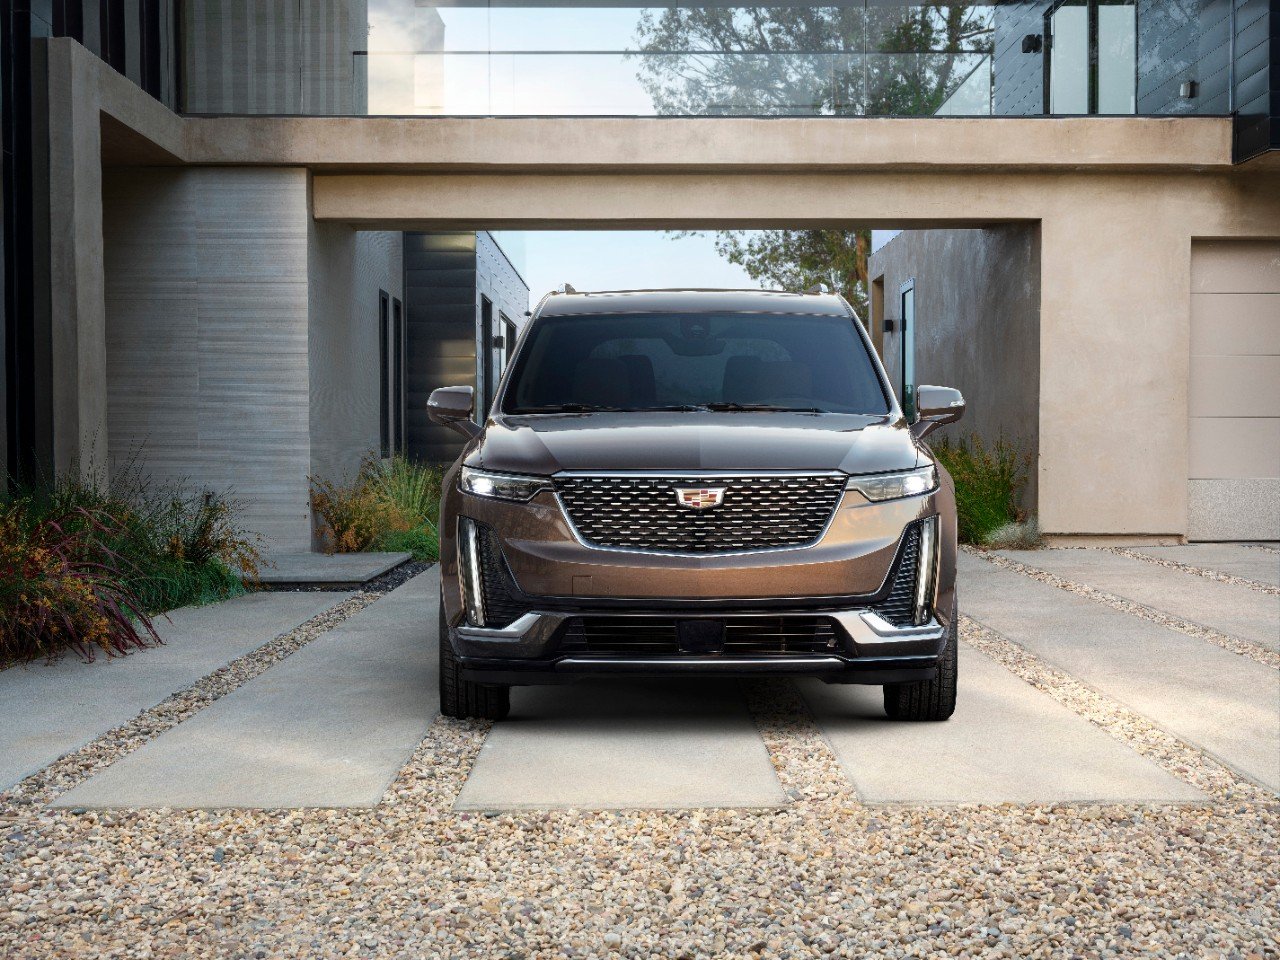 2020 Cadillac Xt6 Caddy Makes Its Overdue Return To The Three Row